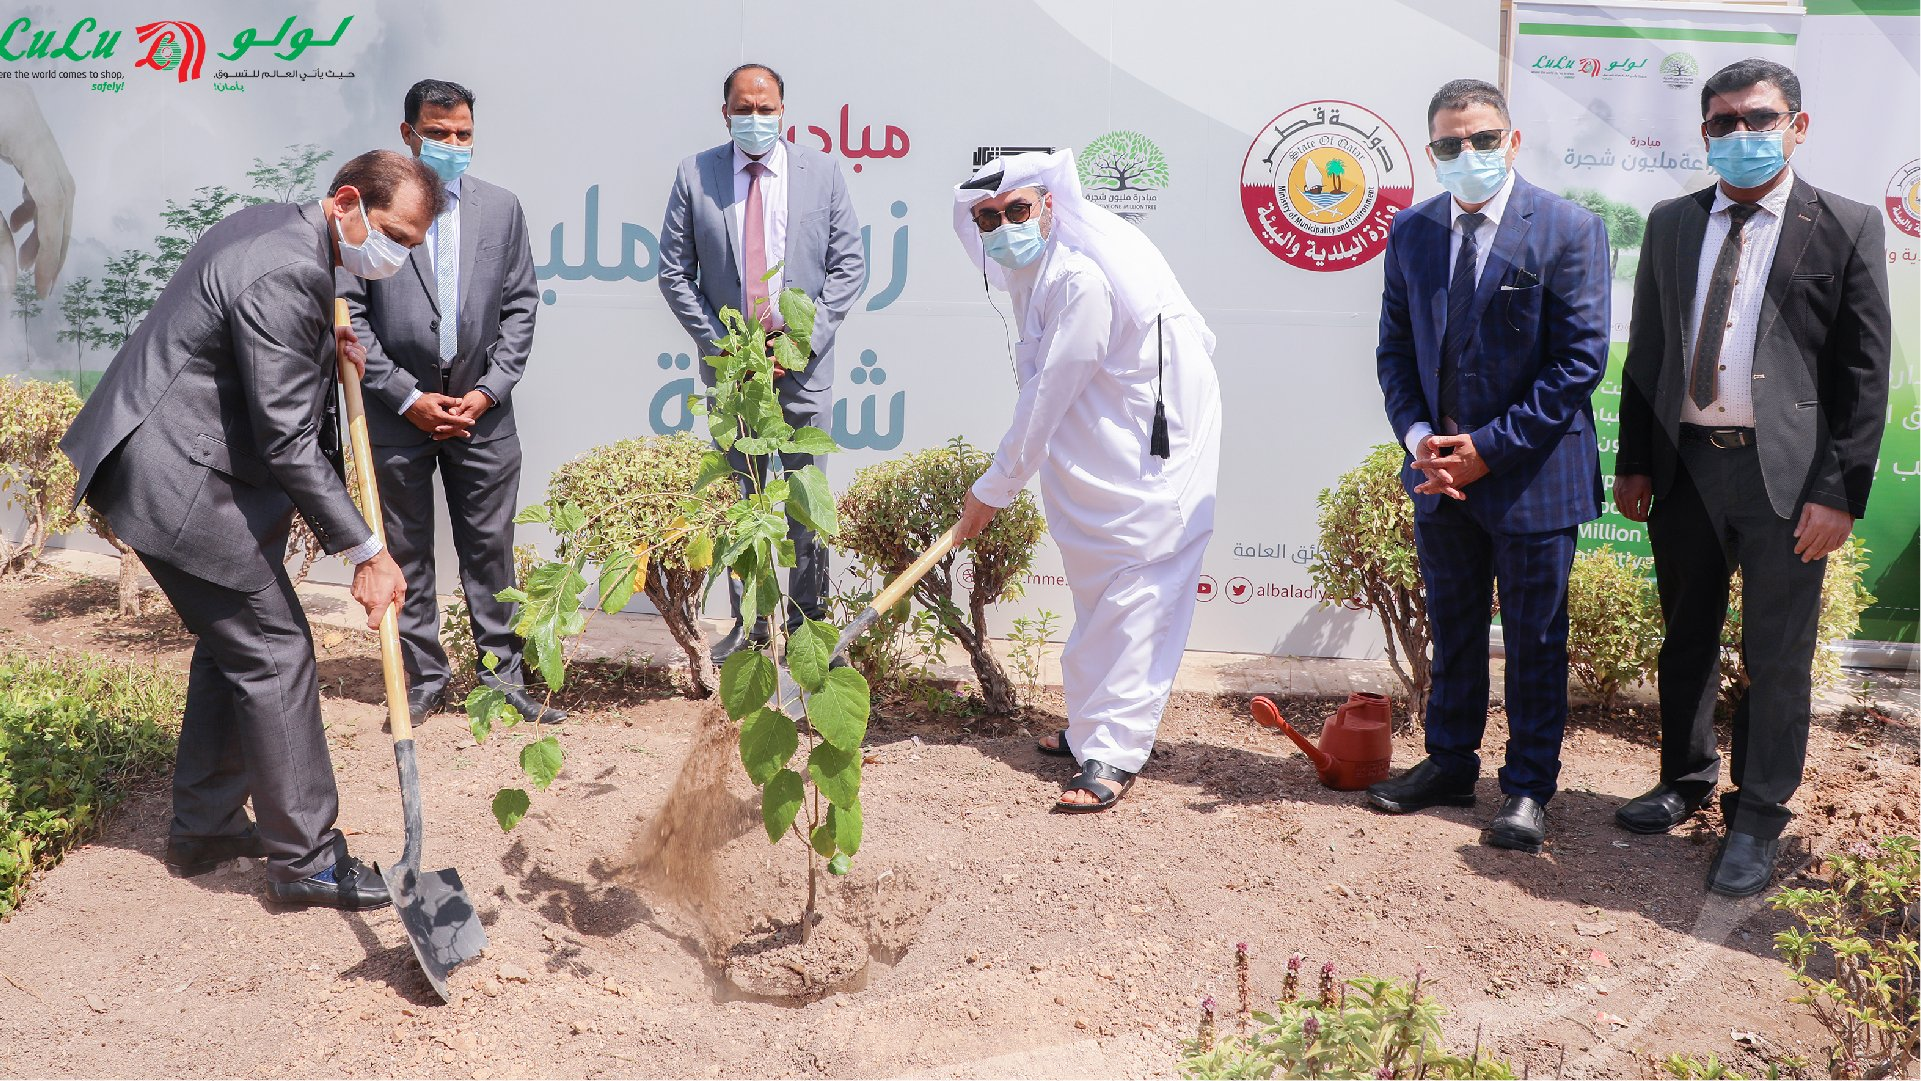 One million trees will be planted before the 2022 World Cup